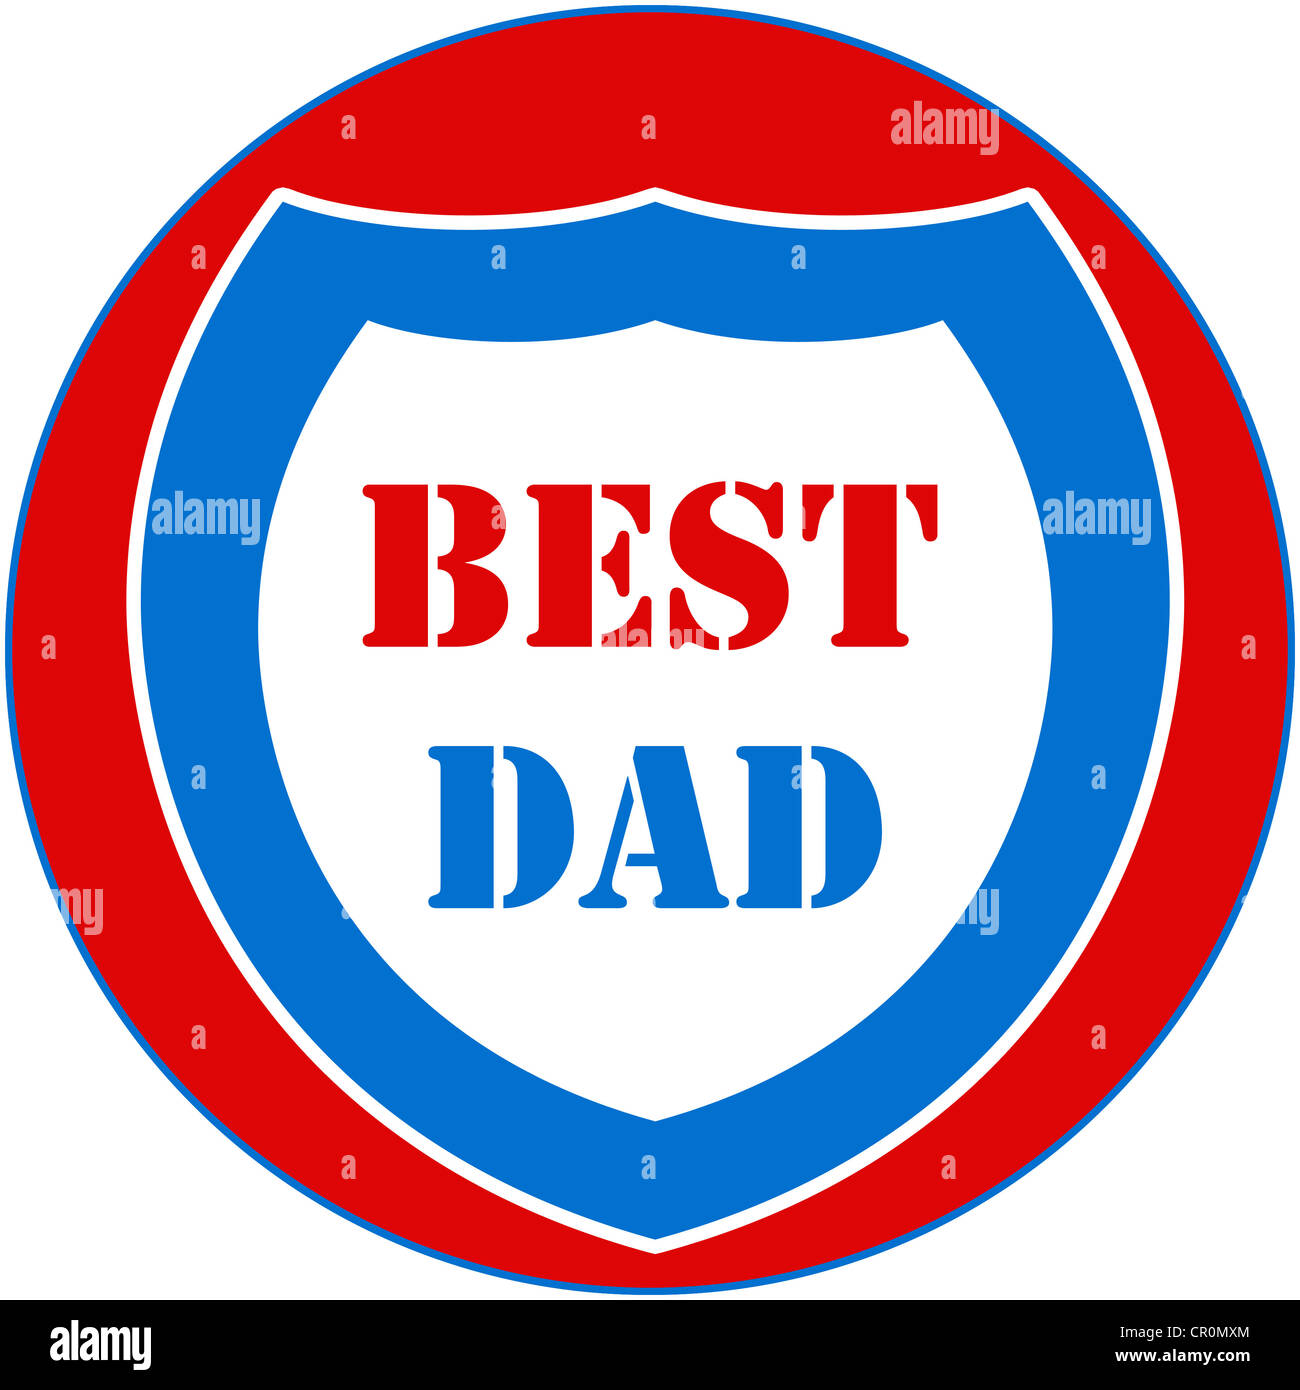 Best Dad medal in red, blue and white Stock Photo